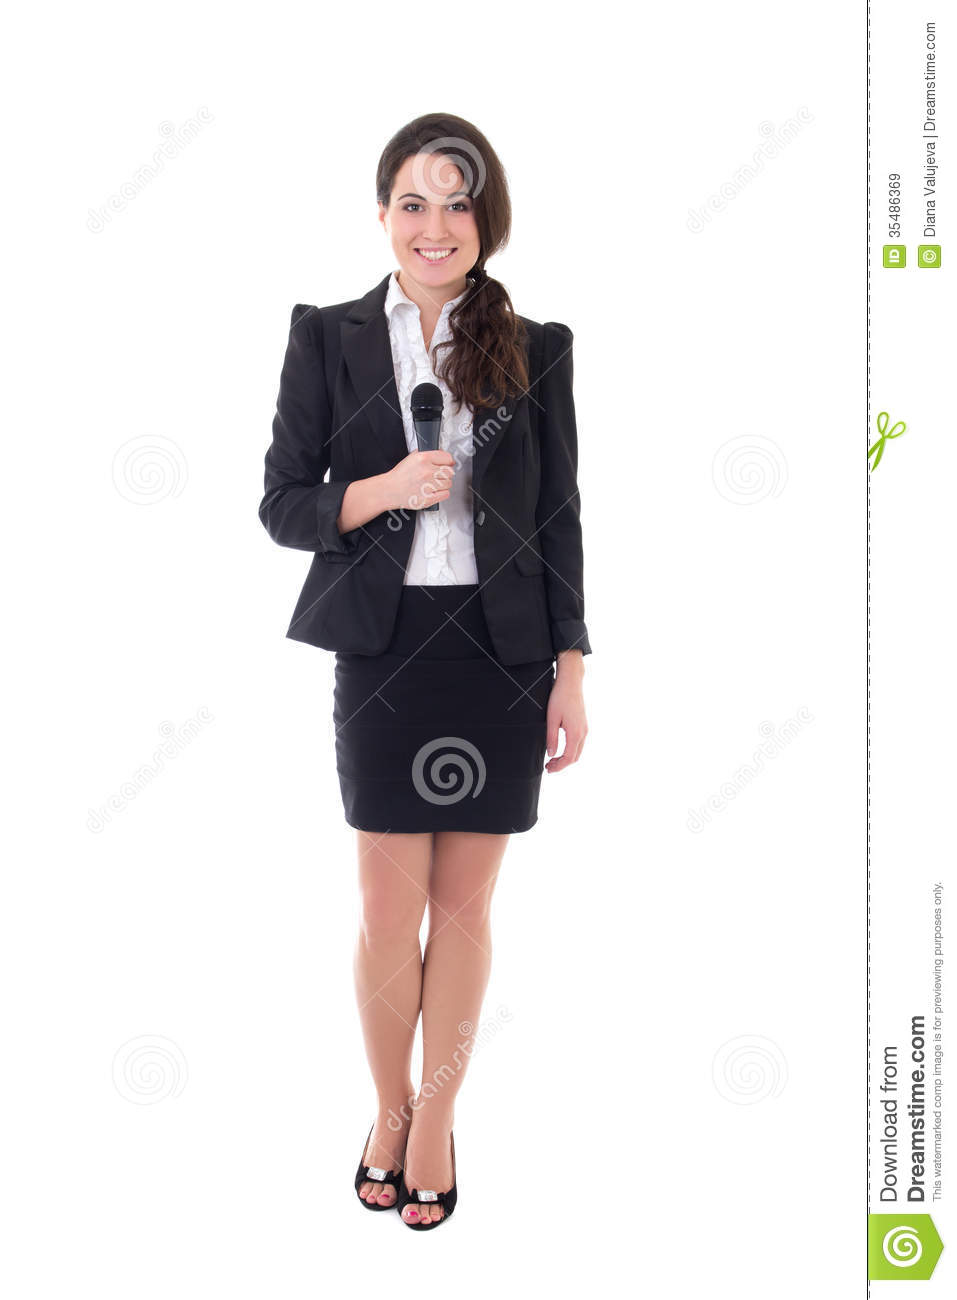 Female Reporter With Microphone Isolated On White Royalty